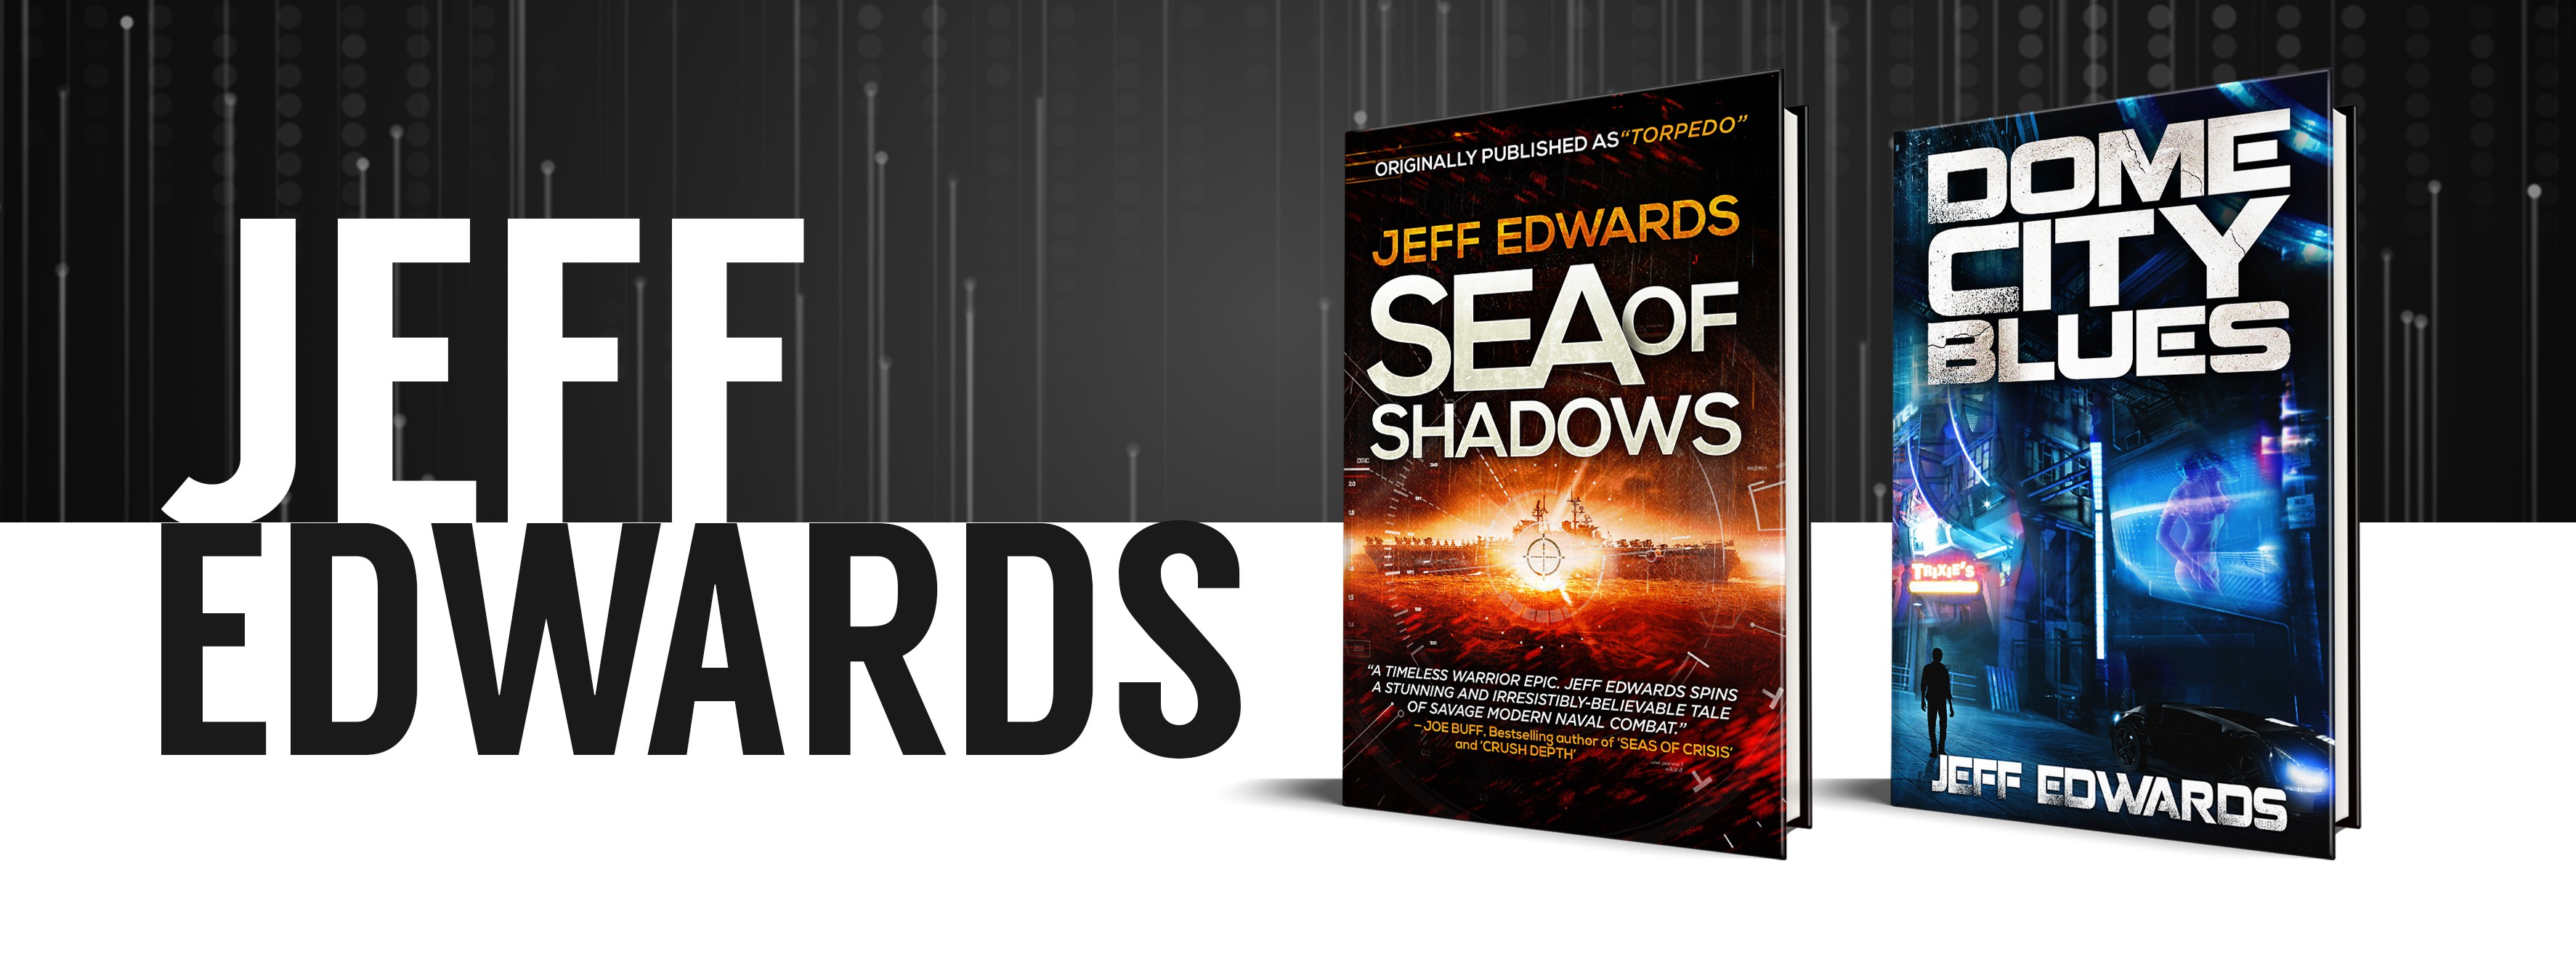 Create an eye-catching Facebook cover design for a thriller author.